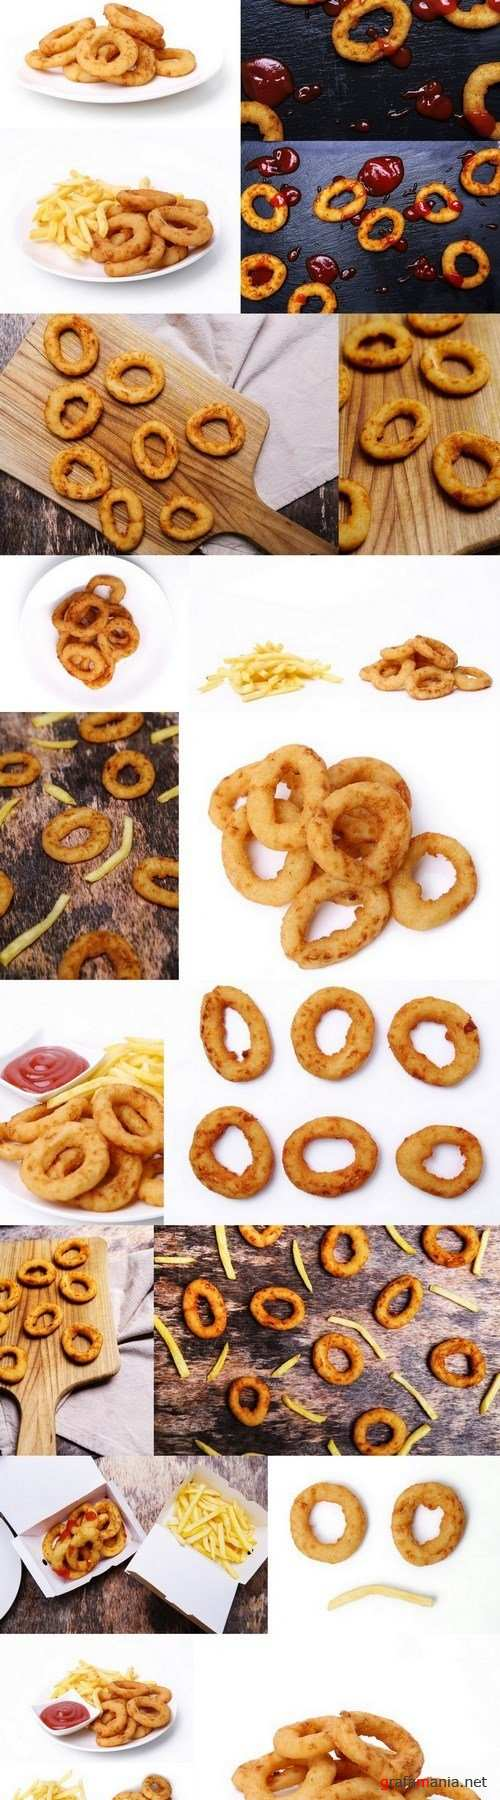 Onion rings and french fries - 19xUHQ JPEG Photo Stock